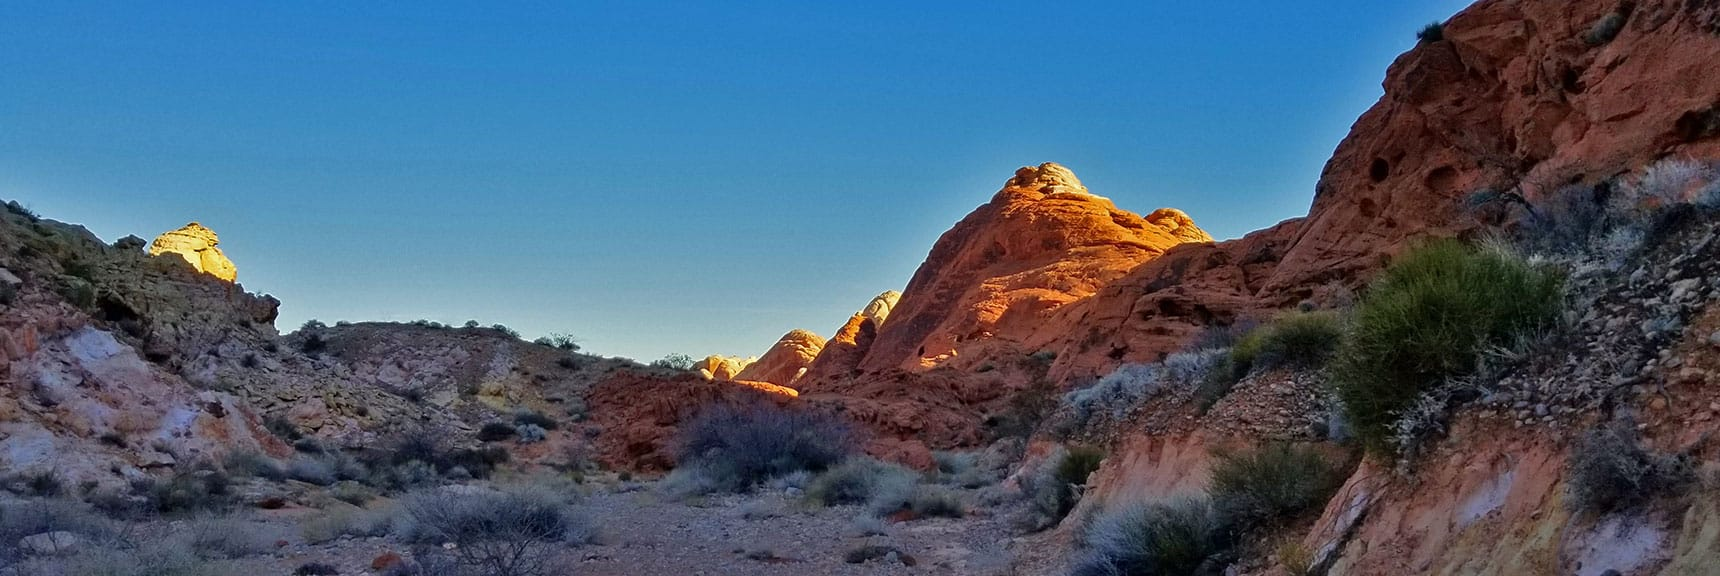 White Domes Coming into View on Prospect Trail in Valley of Fire State Park, Nevada